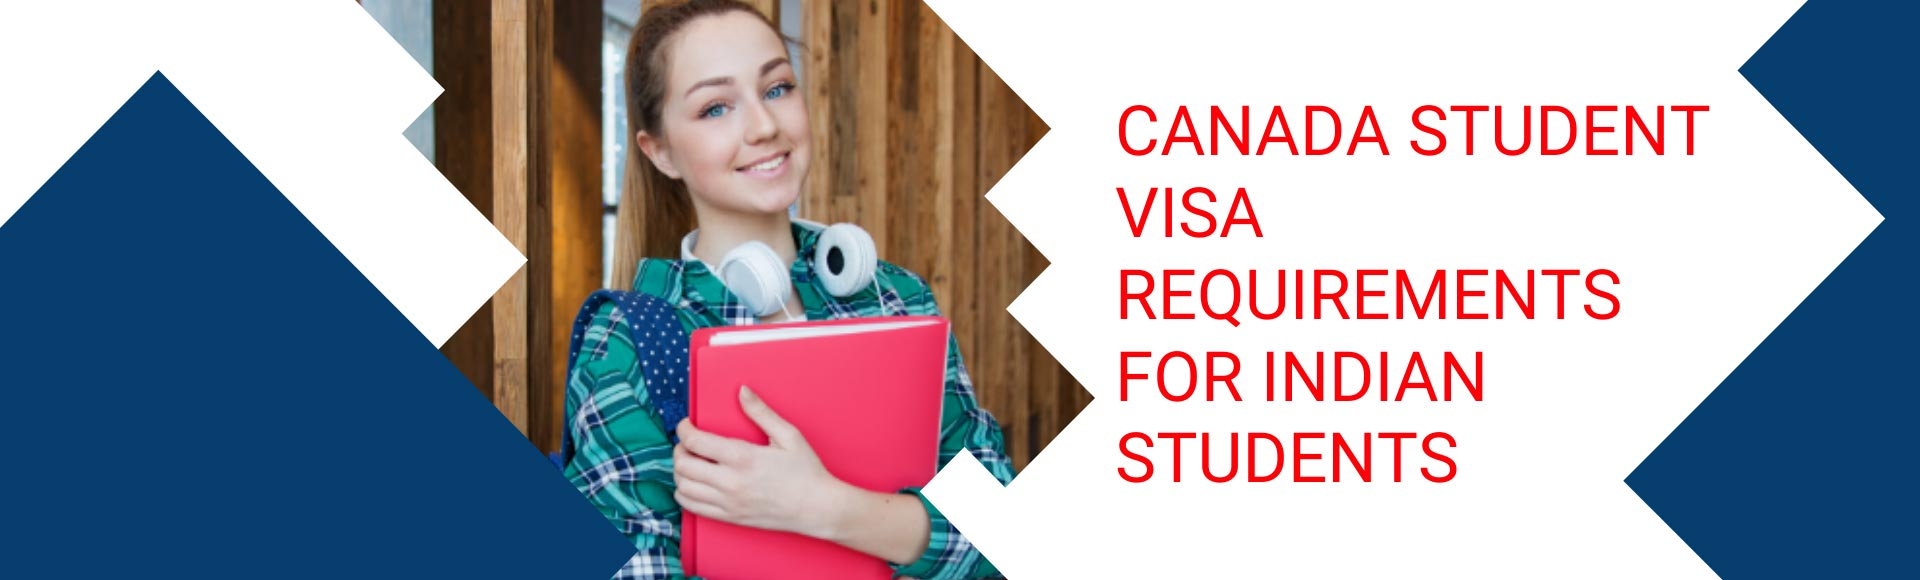 Canada Student Visa Requirements for Indian students